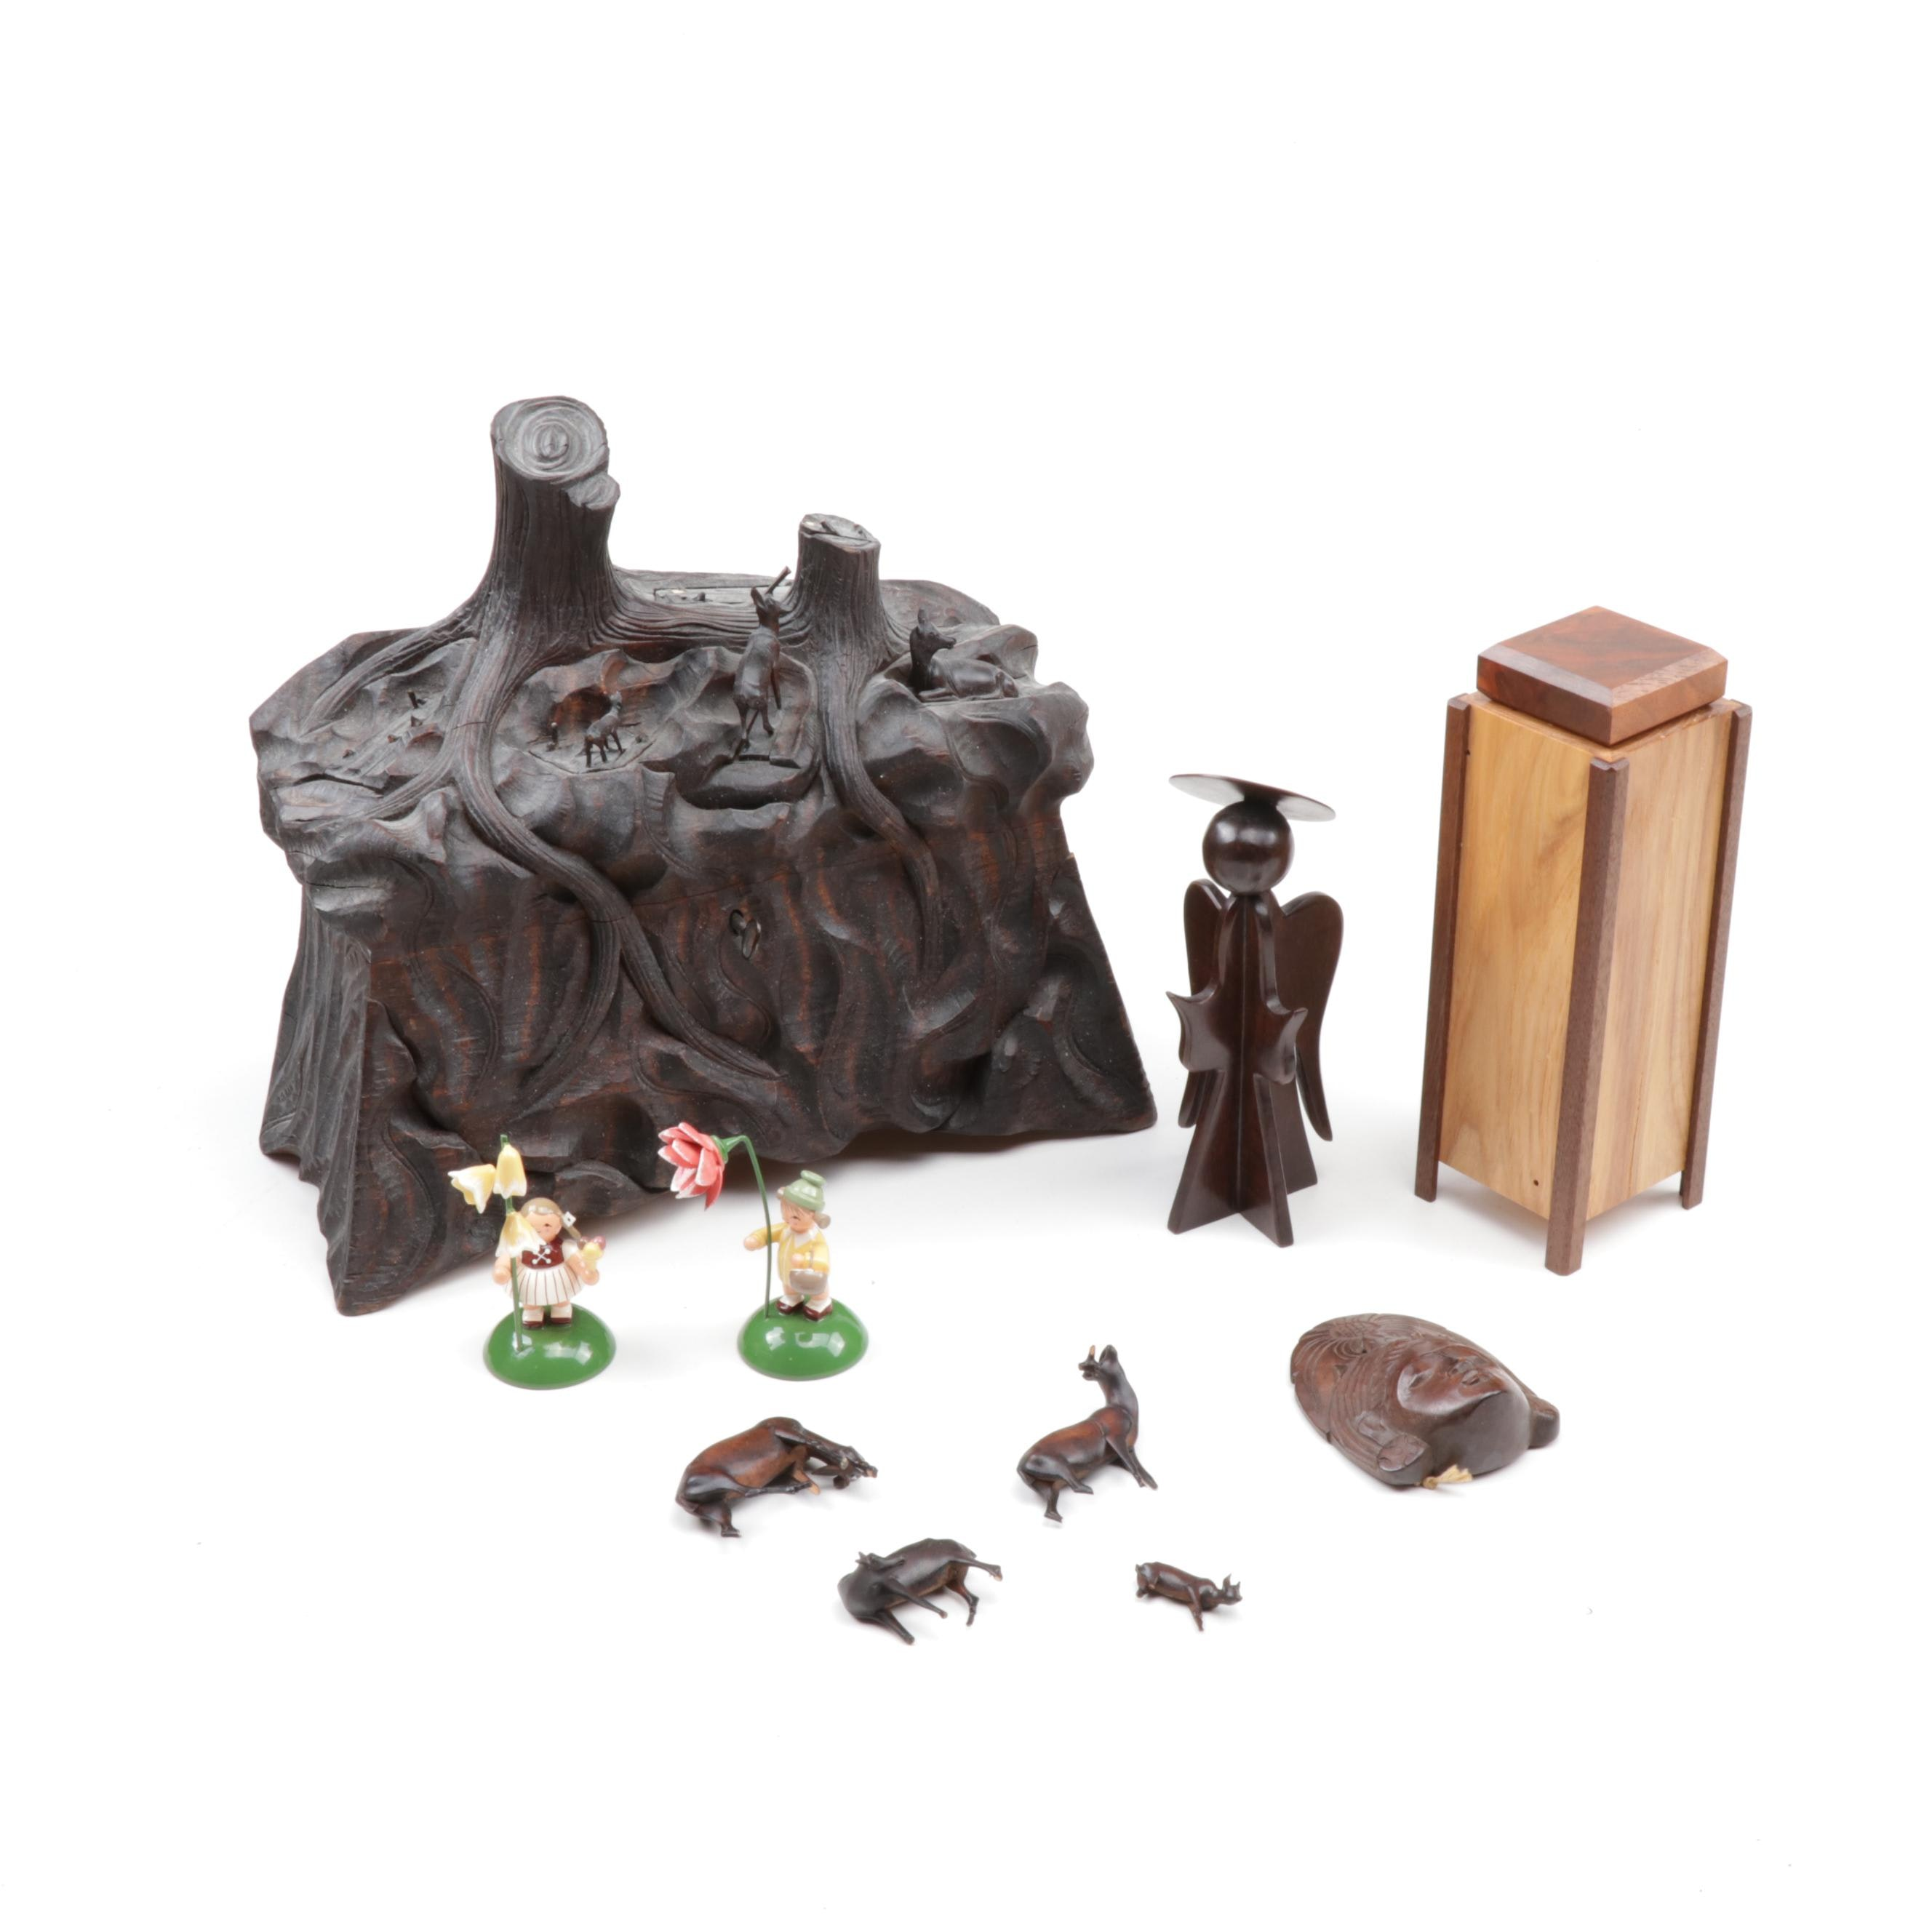 Carved Wood Containers and Figurines